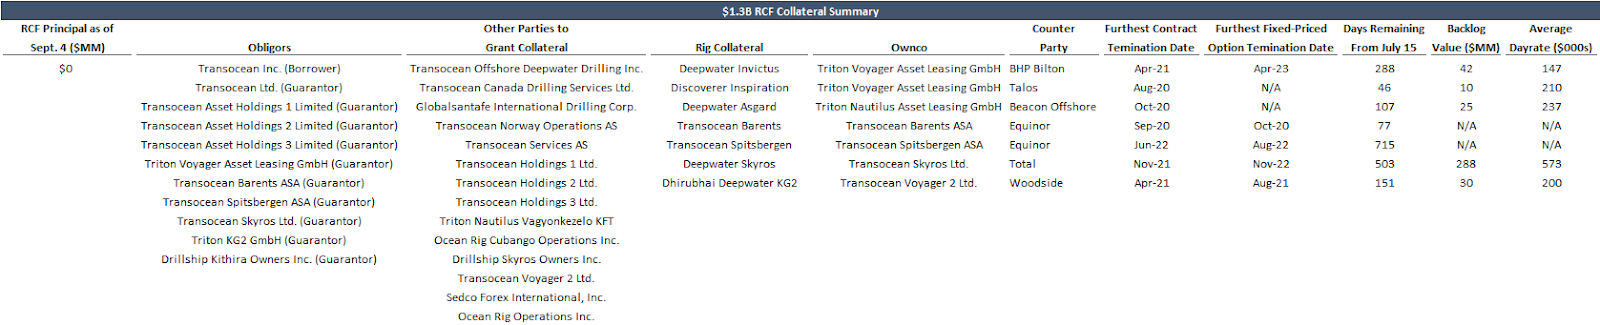 Offshore driller bankruptcy filing Transocean creditor summary from Americas Core Credit by Reorg